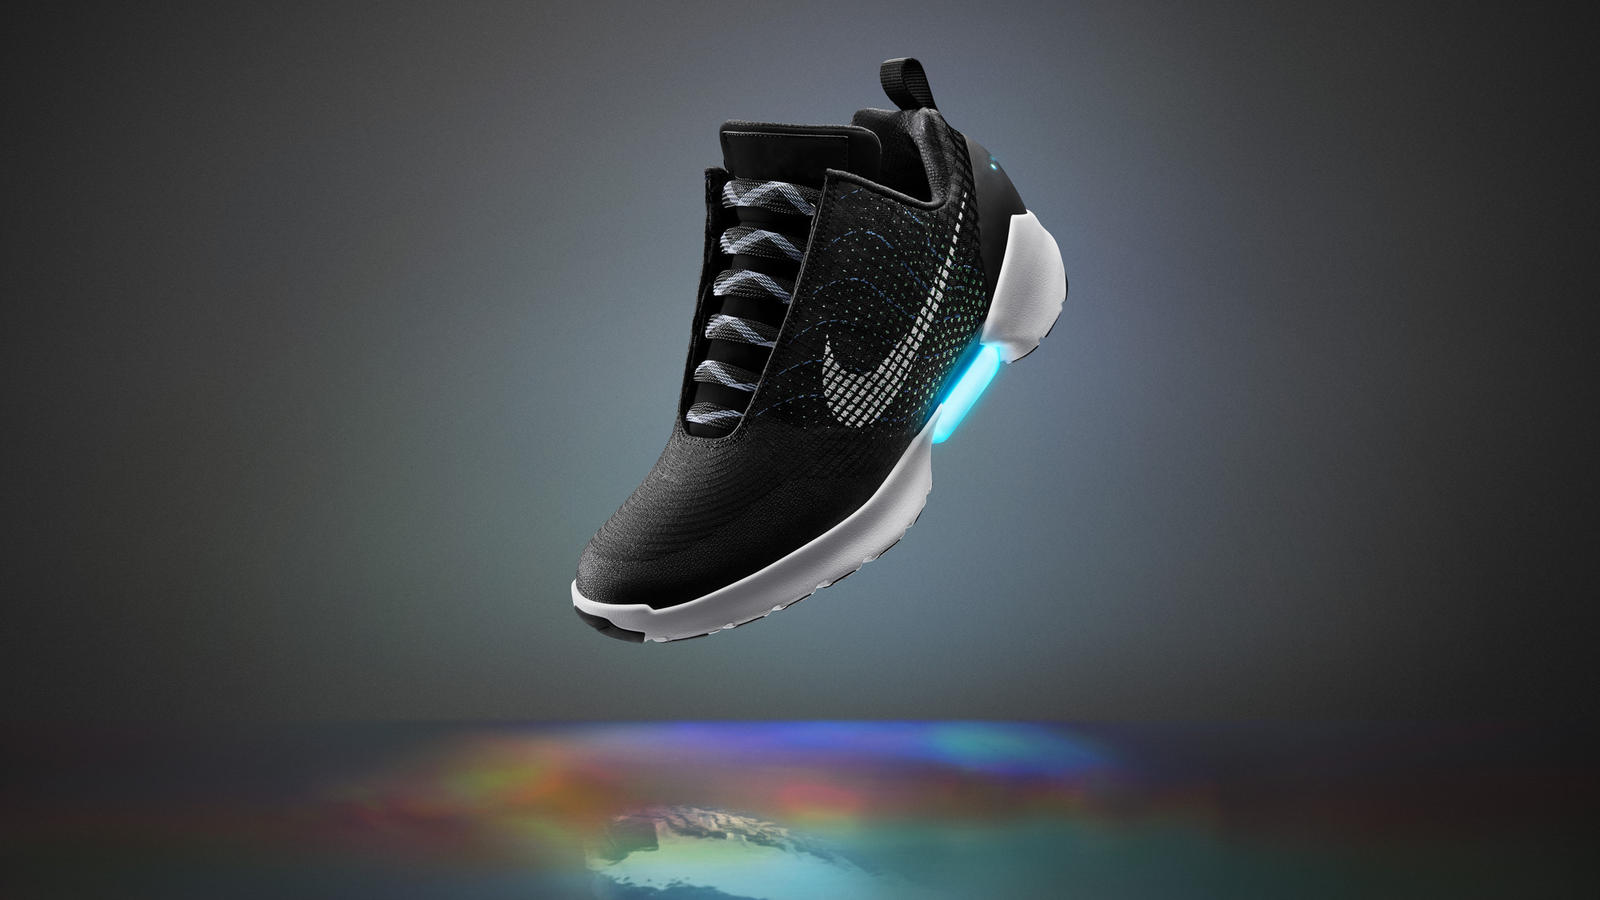 Nike HyperAdapt 1.0 Self Lacing Shoes